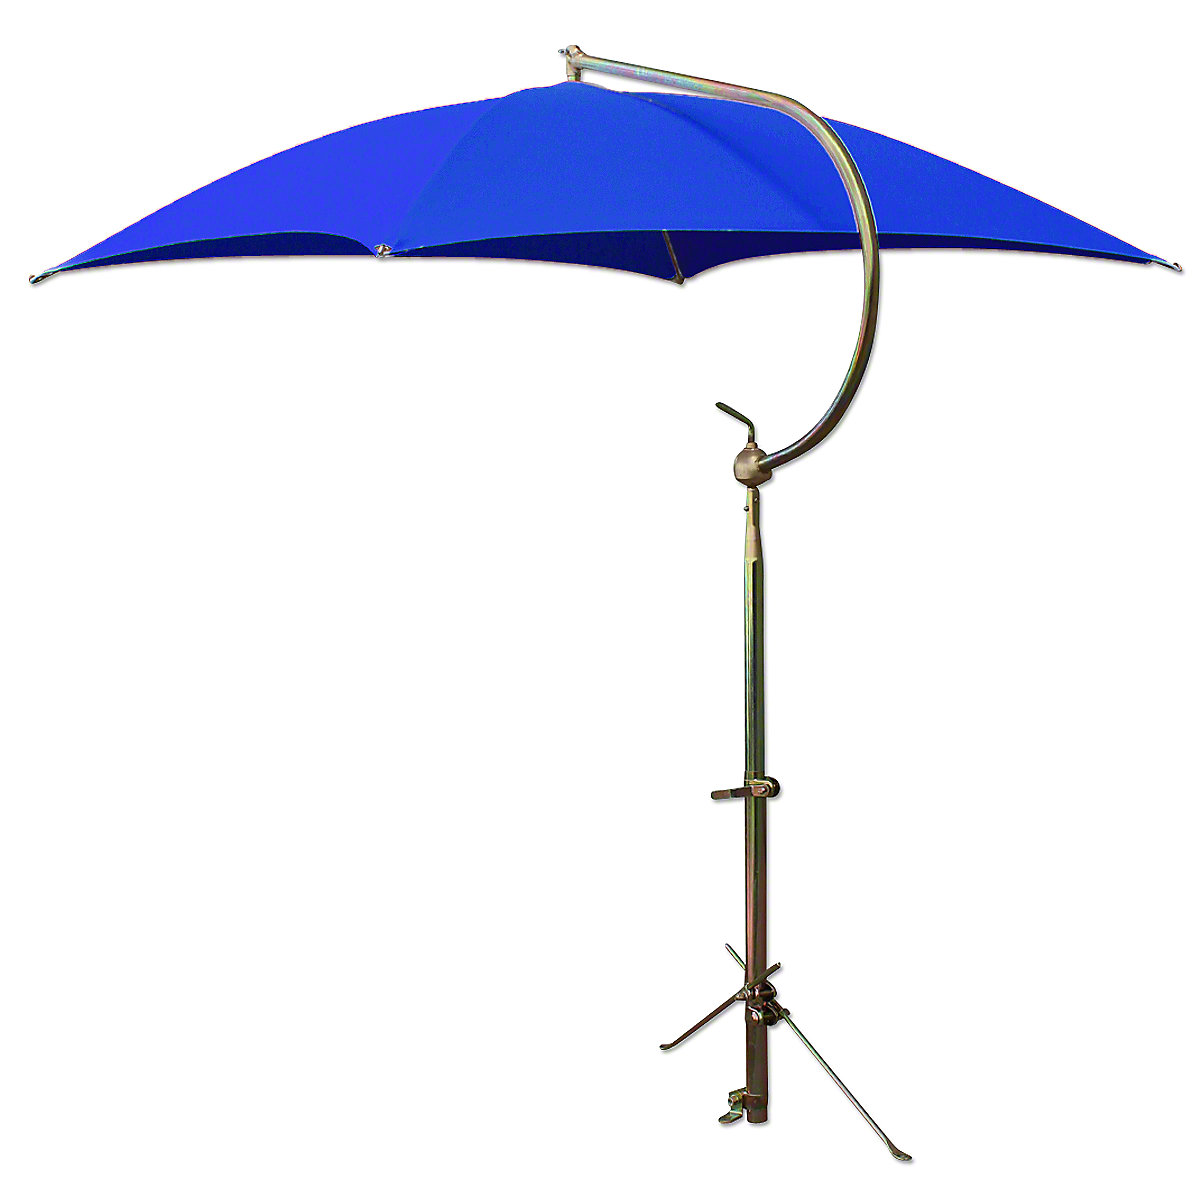 Deluxe Blue Tractor Umbrella With Brackets. Four oil-tempered spring steel bows are locked into place with individual spring clips, providing ease of operation and a rigid framework for the cover. Frame constructed of tubular steel. All metal parts, including frame and mounting brackets, zinc plated for rust resistance and lasting appearance. 54 square cover is made of durable polyester material. Each corner is double reinforced and has heavy steel grommets. Complete with universal mounting bracket. NOTE: Can be mounted on side of fender, rear end / axle housing, foot platform. Fits tractors, combines, swathers and Industrial equipment.